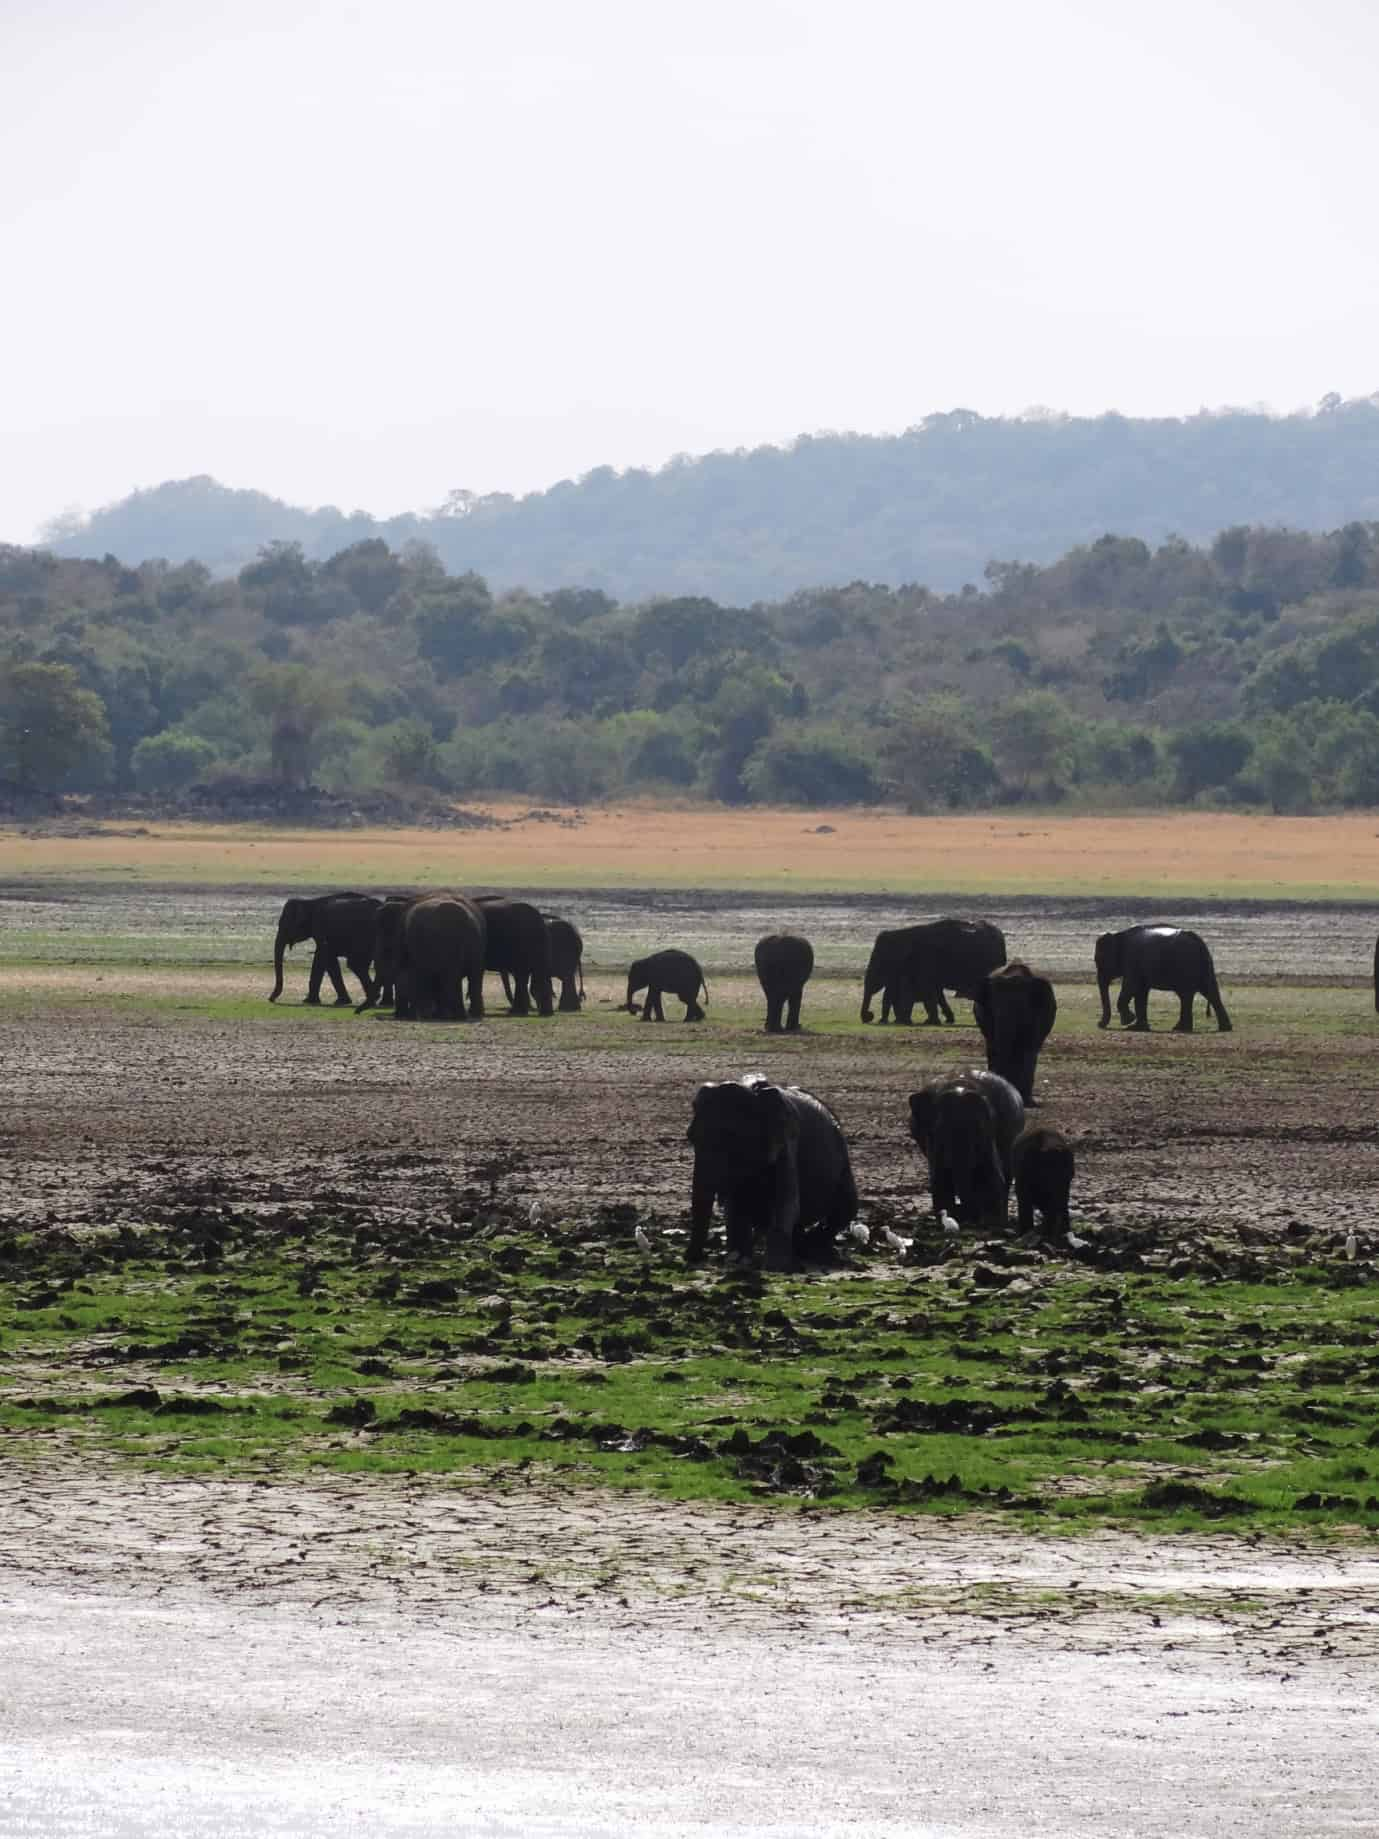 Elephant gathering in Sri lanka - a herd of elephants in two groups with the backdrop of forested hills